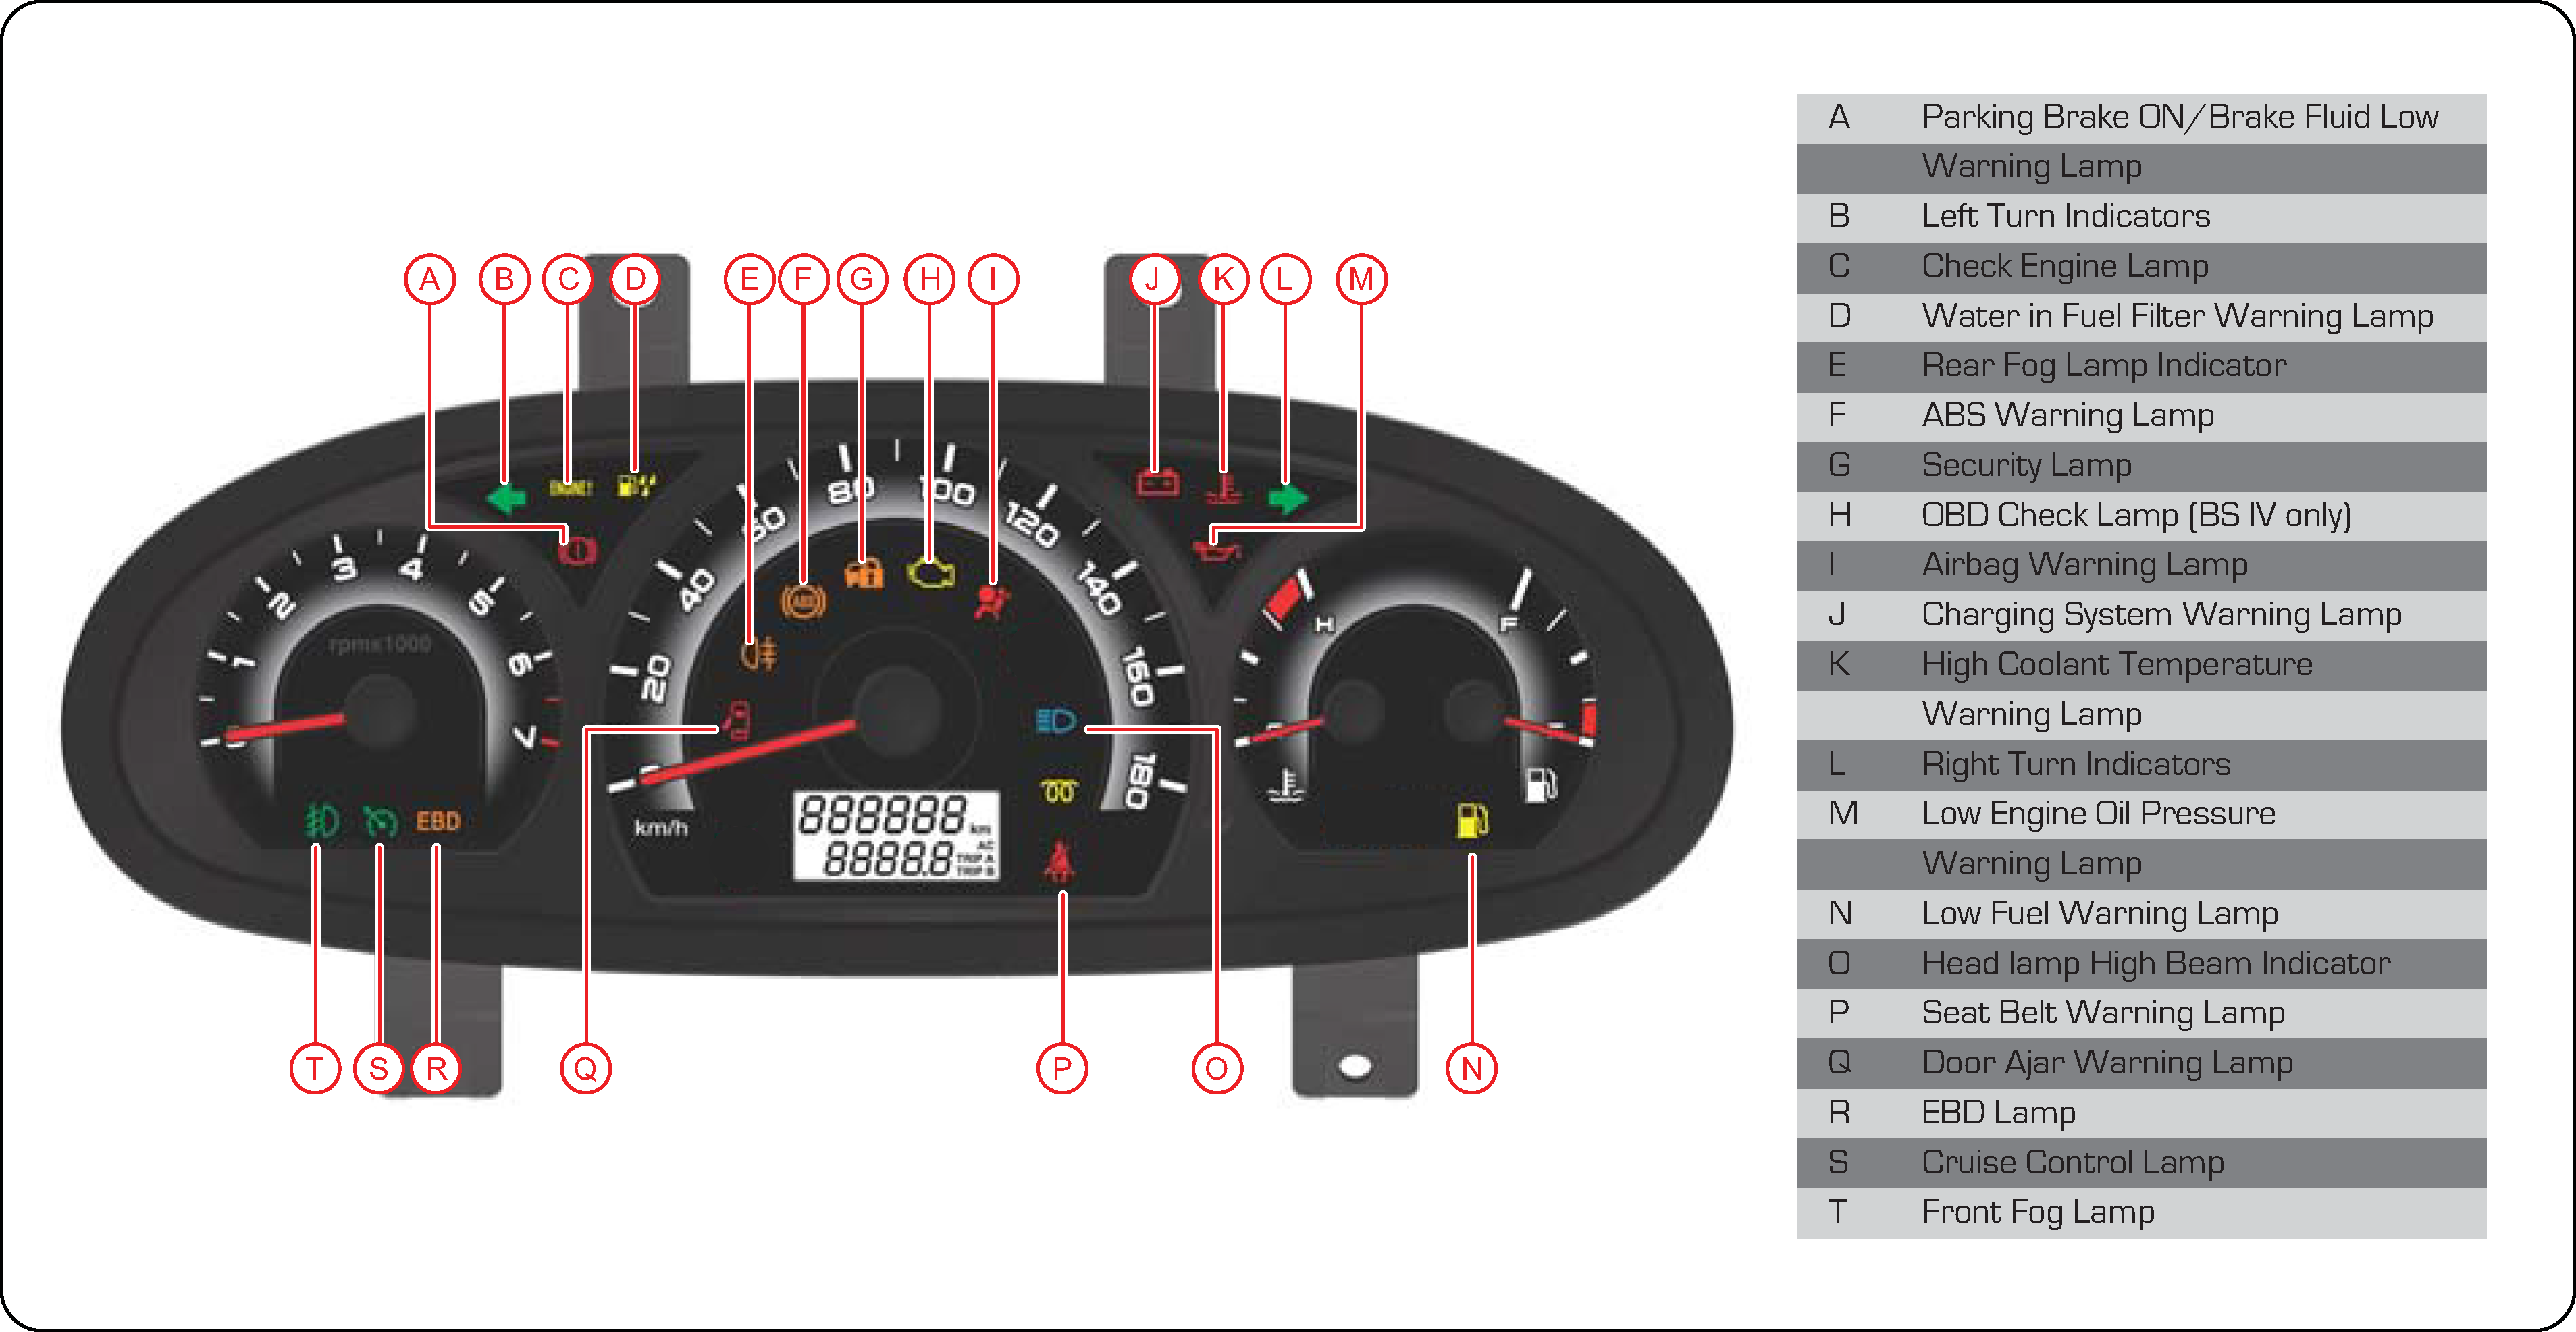 Owners manual 43 warning lamps overview graphic graphic buycottarizona Image collections